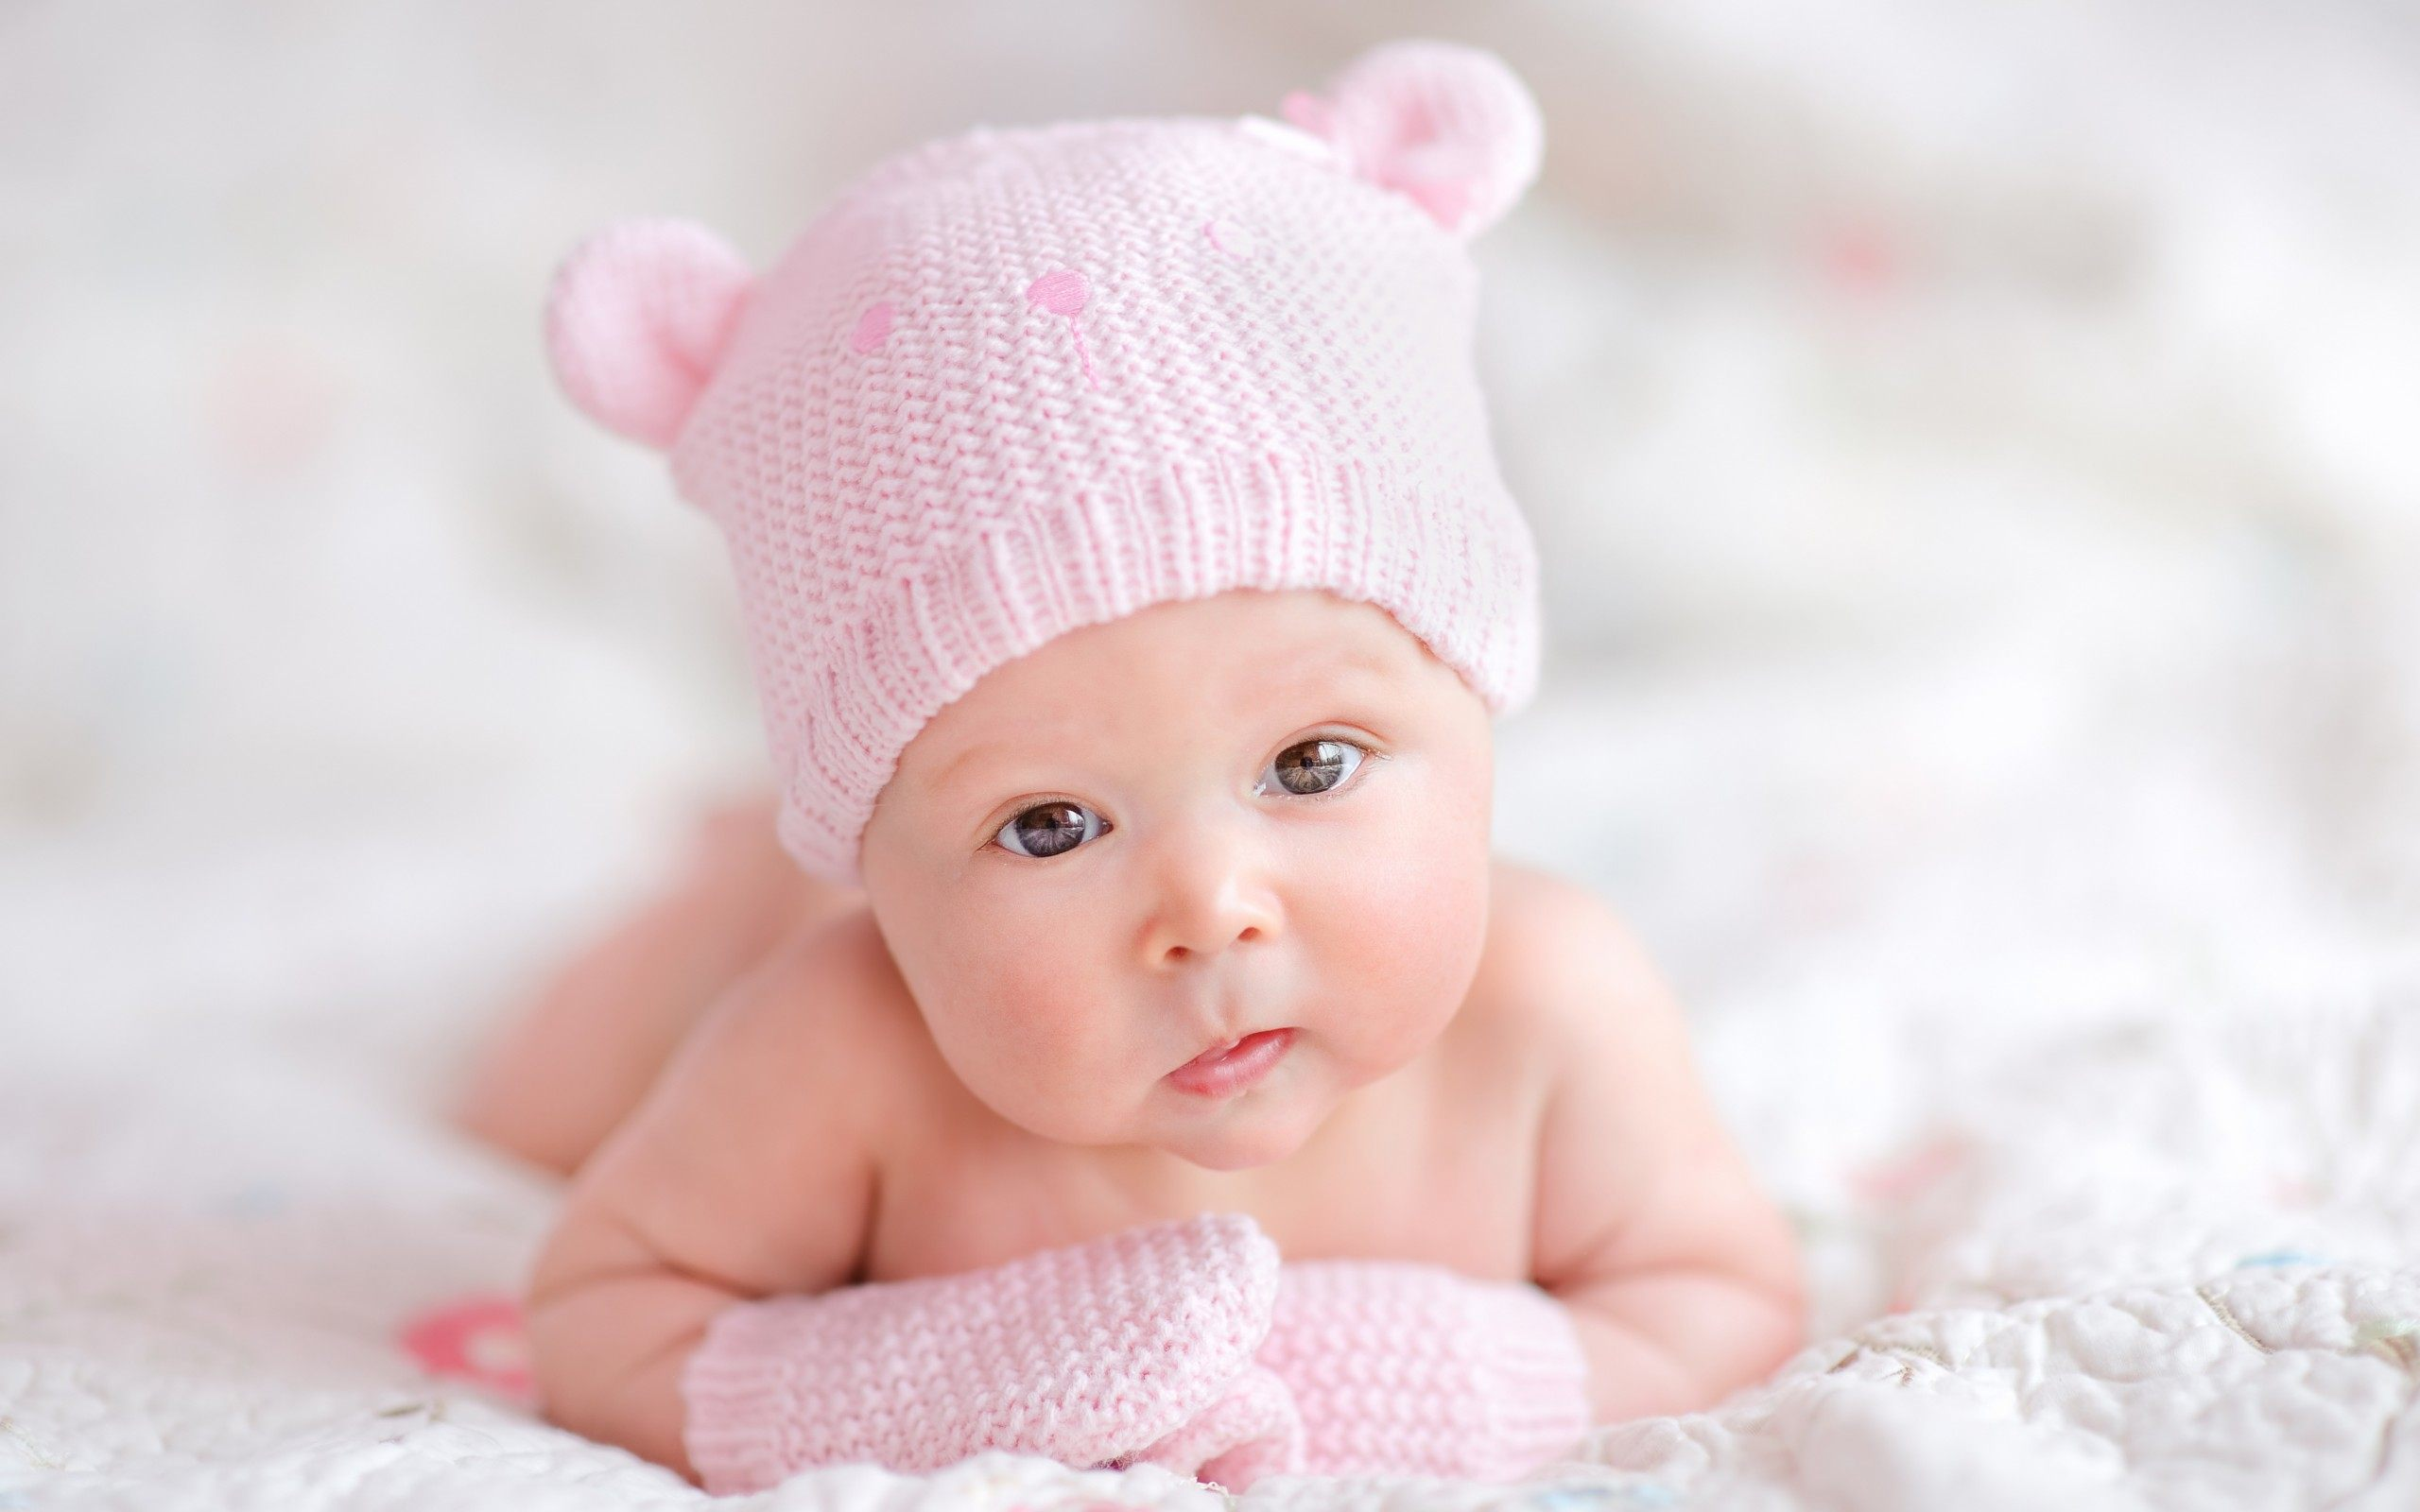 Baby Wallpapers Hd Resolution - Baby Girl , HD Wallpaper & Backgrounds